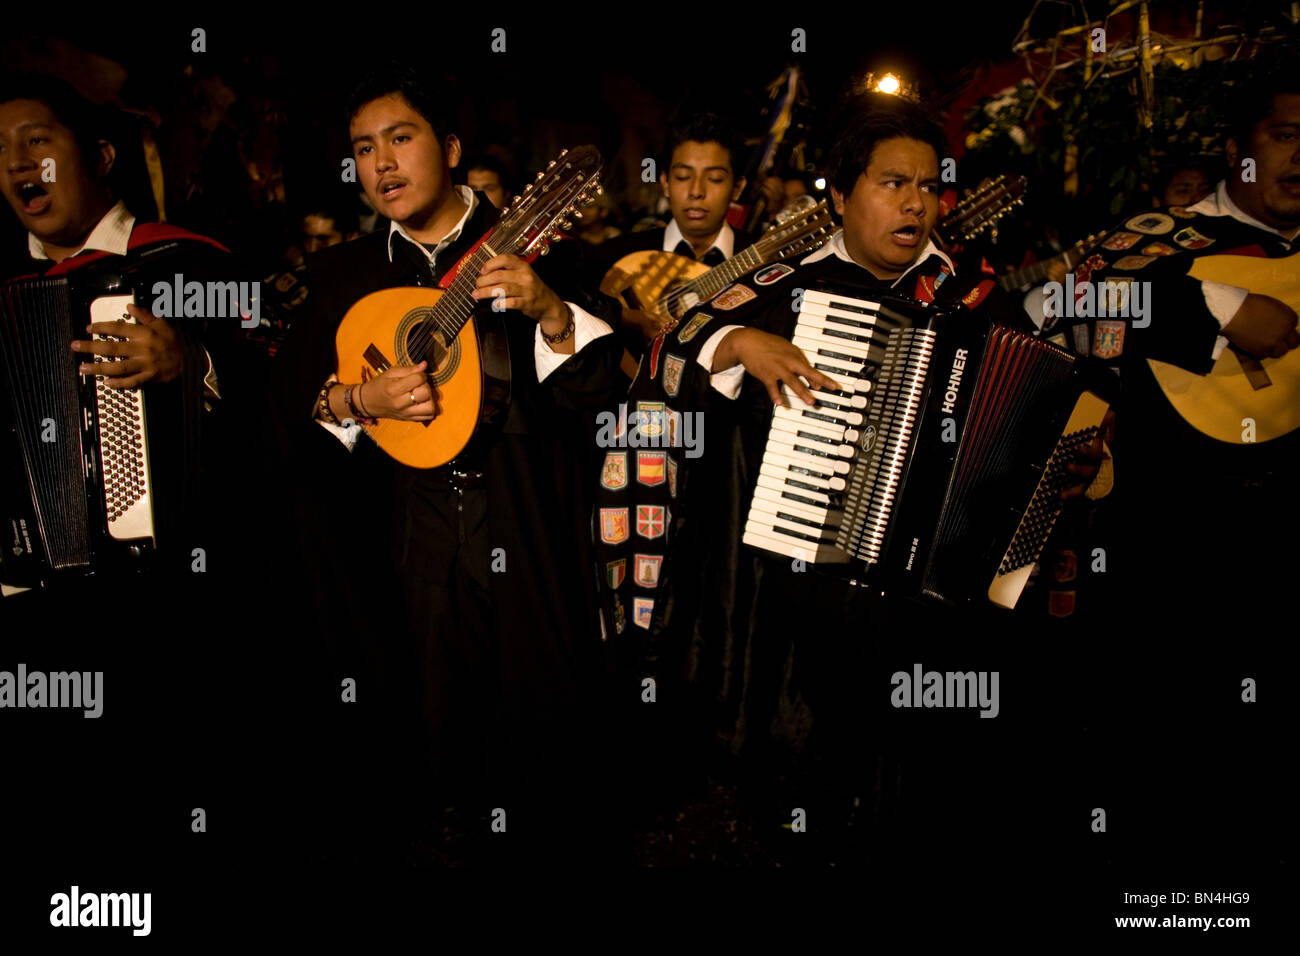 University musicians, known as tunos, play during holy week celebrations in Oaxaca, Mexico, April 12, 2009. Stock Photo